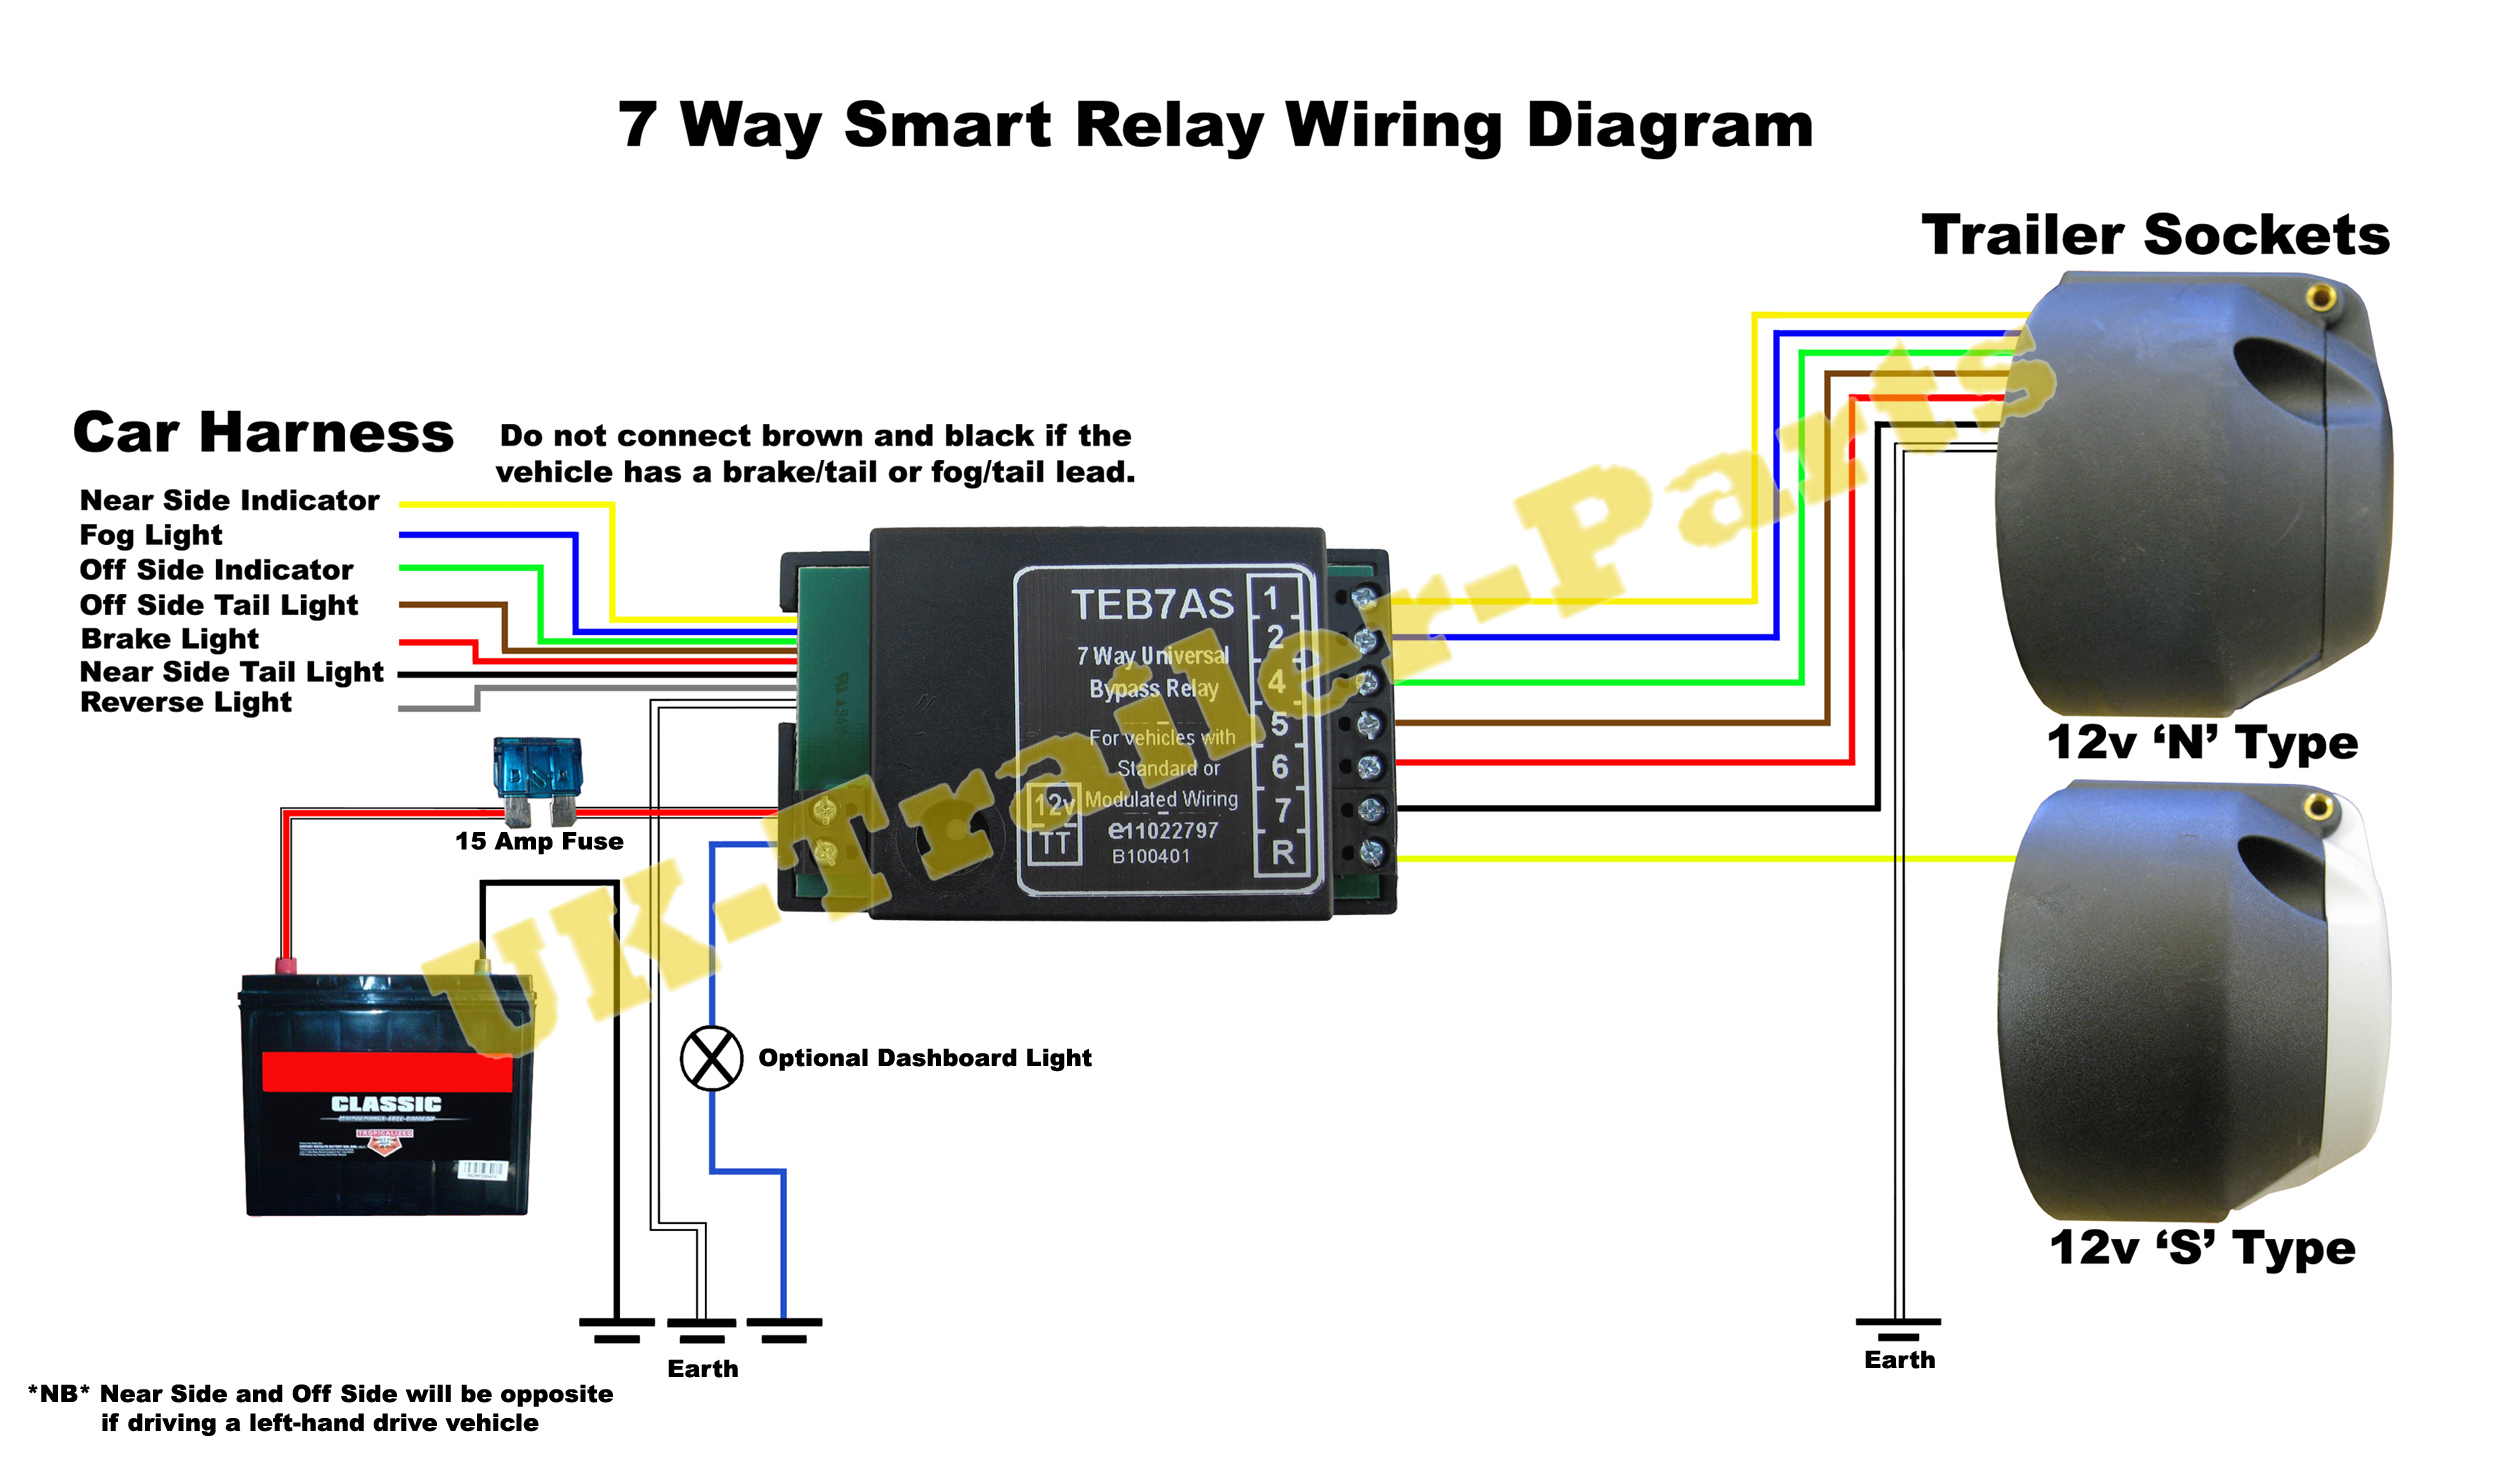 smart relay wiring diagram2 skoda yeti towbar wiring diagram skoda 13 \u2022 wiring diagrams j ford mondeo estate towbar wiring diagram at bayanpartner.co